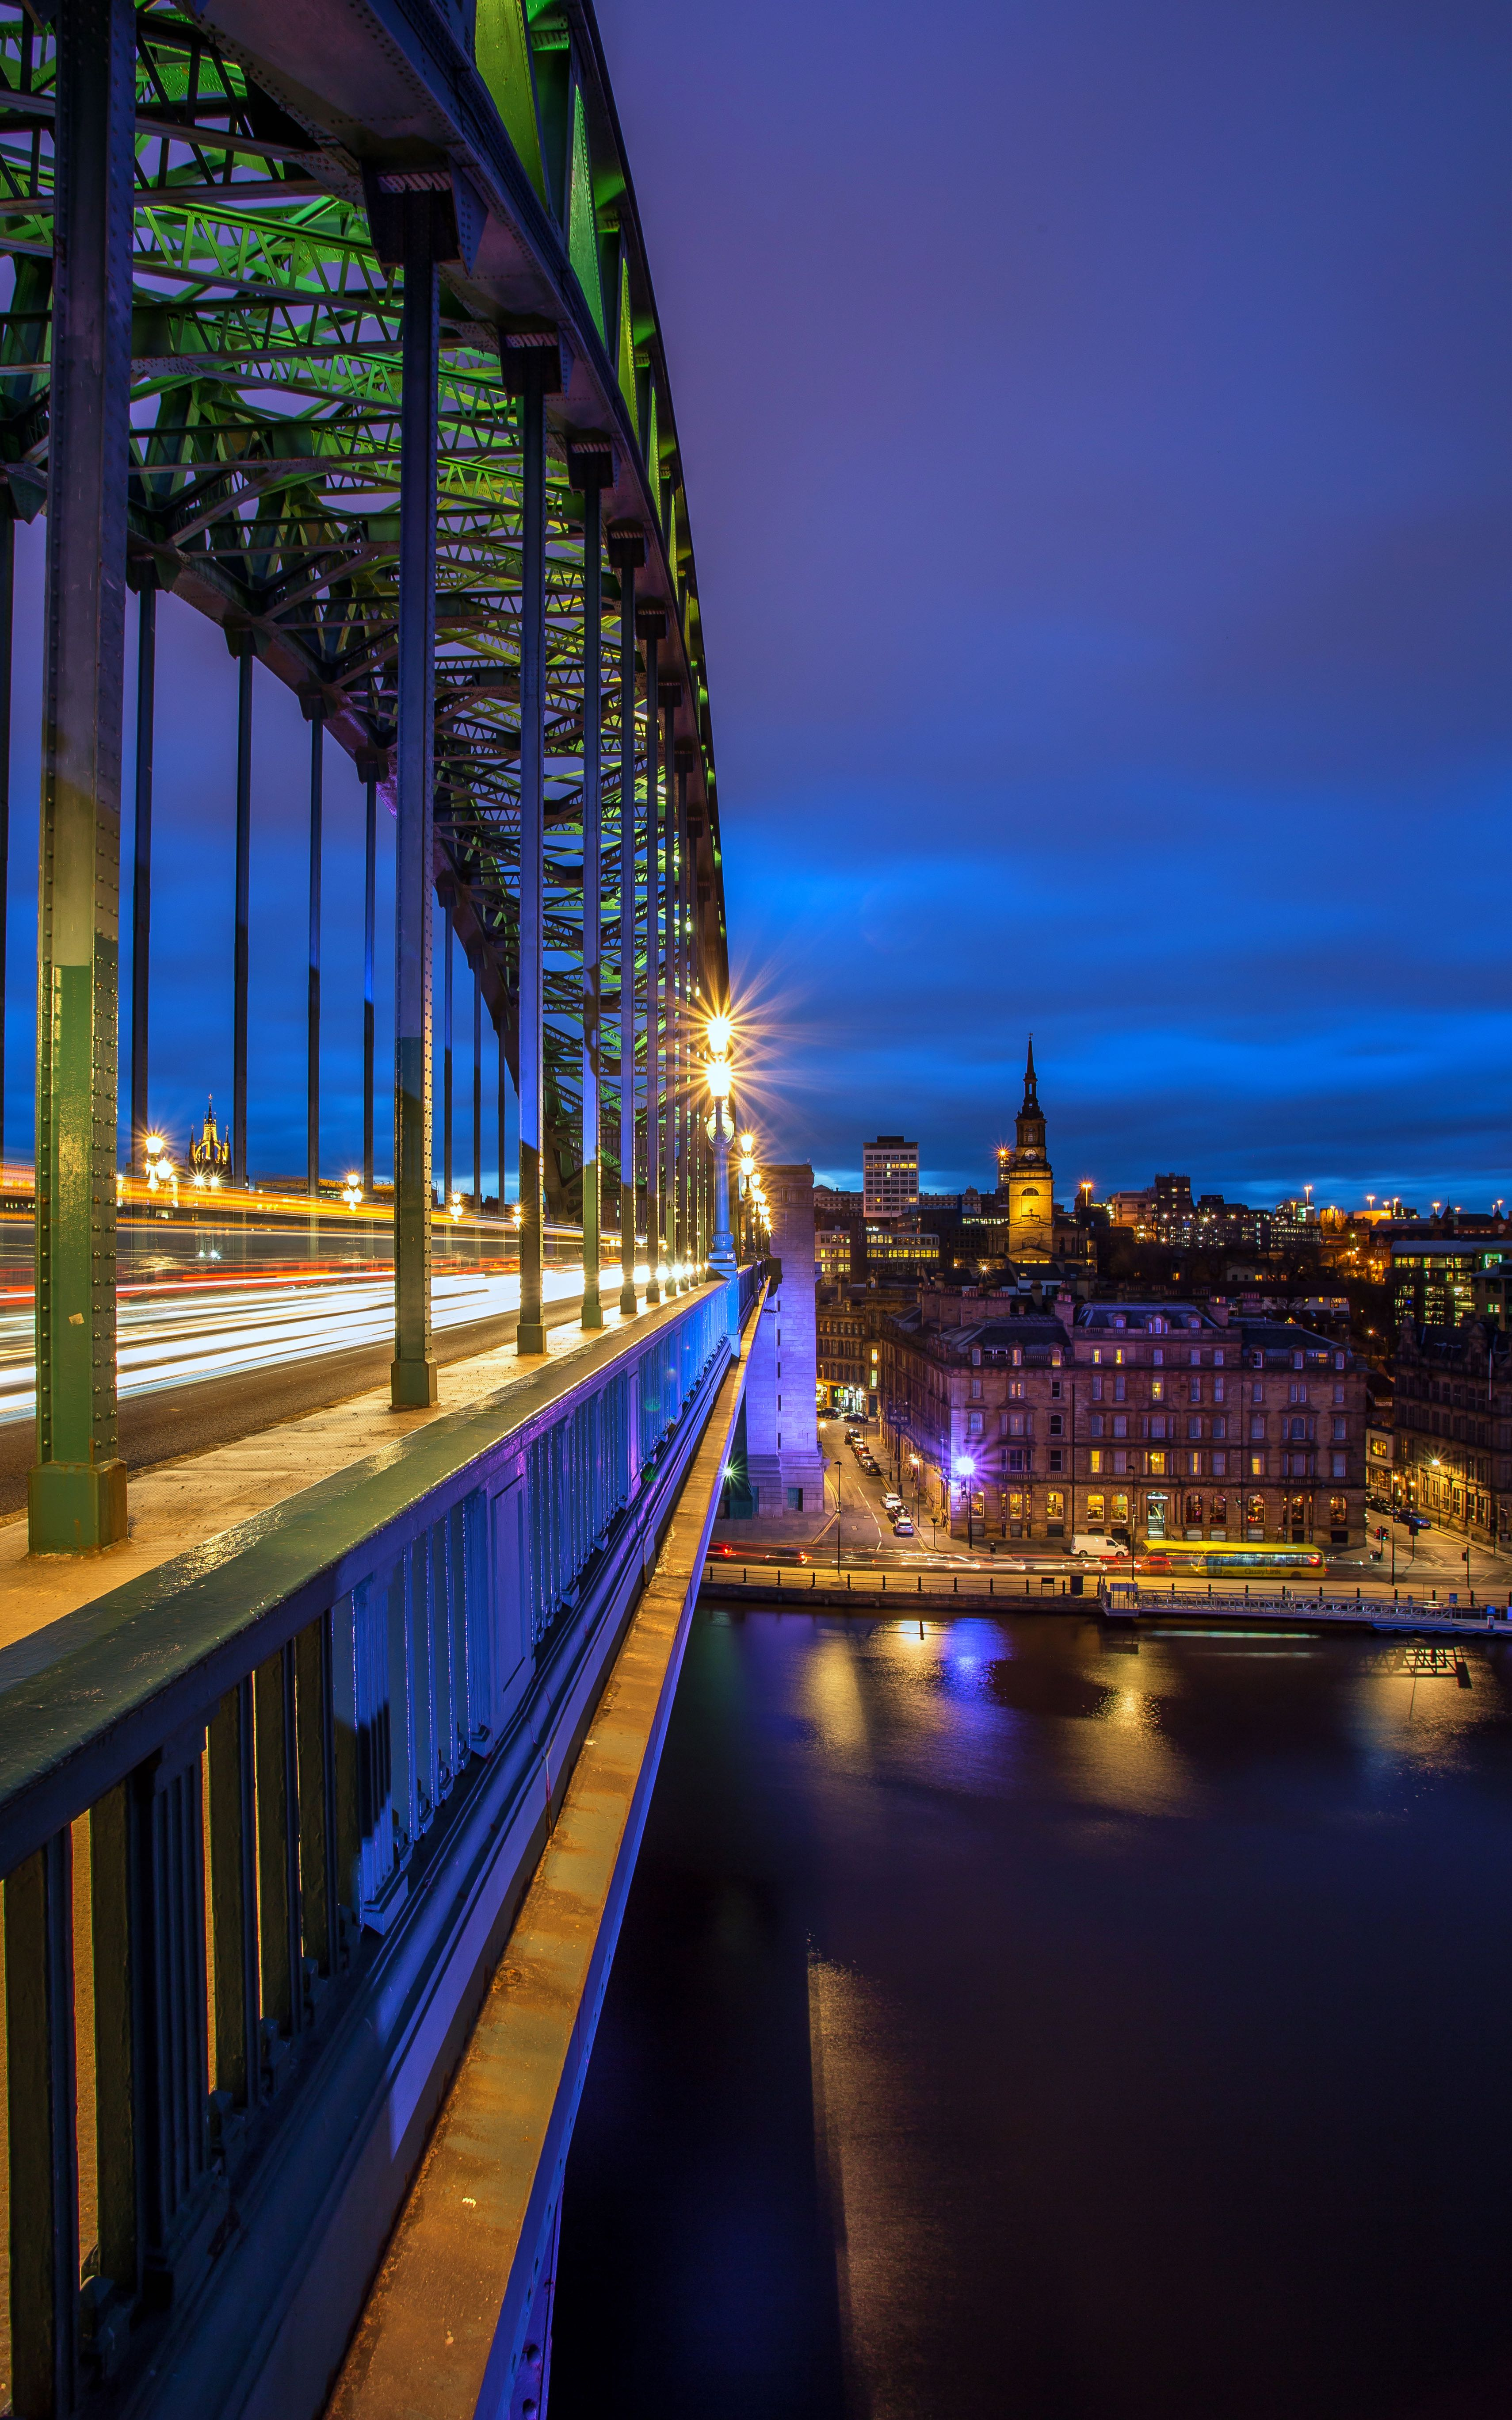 Image for Learning and Teaching Conference 2018 of Tyne Bridge.